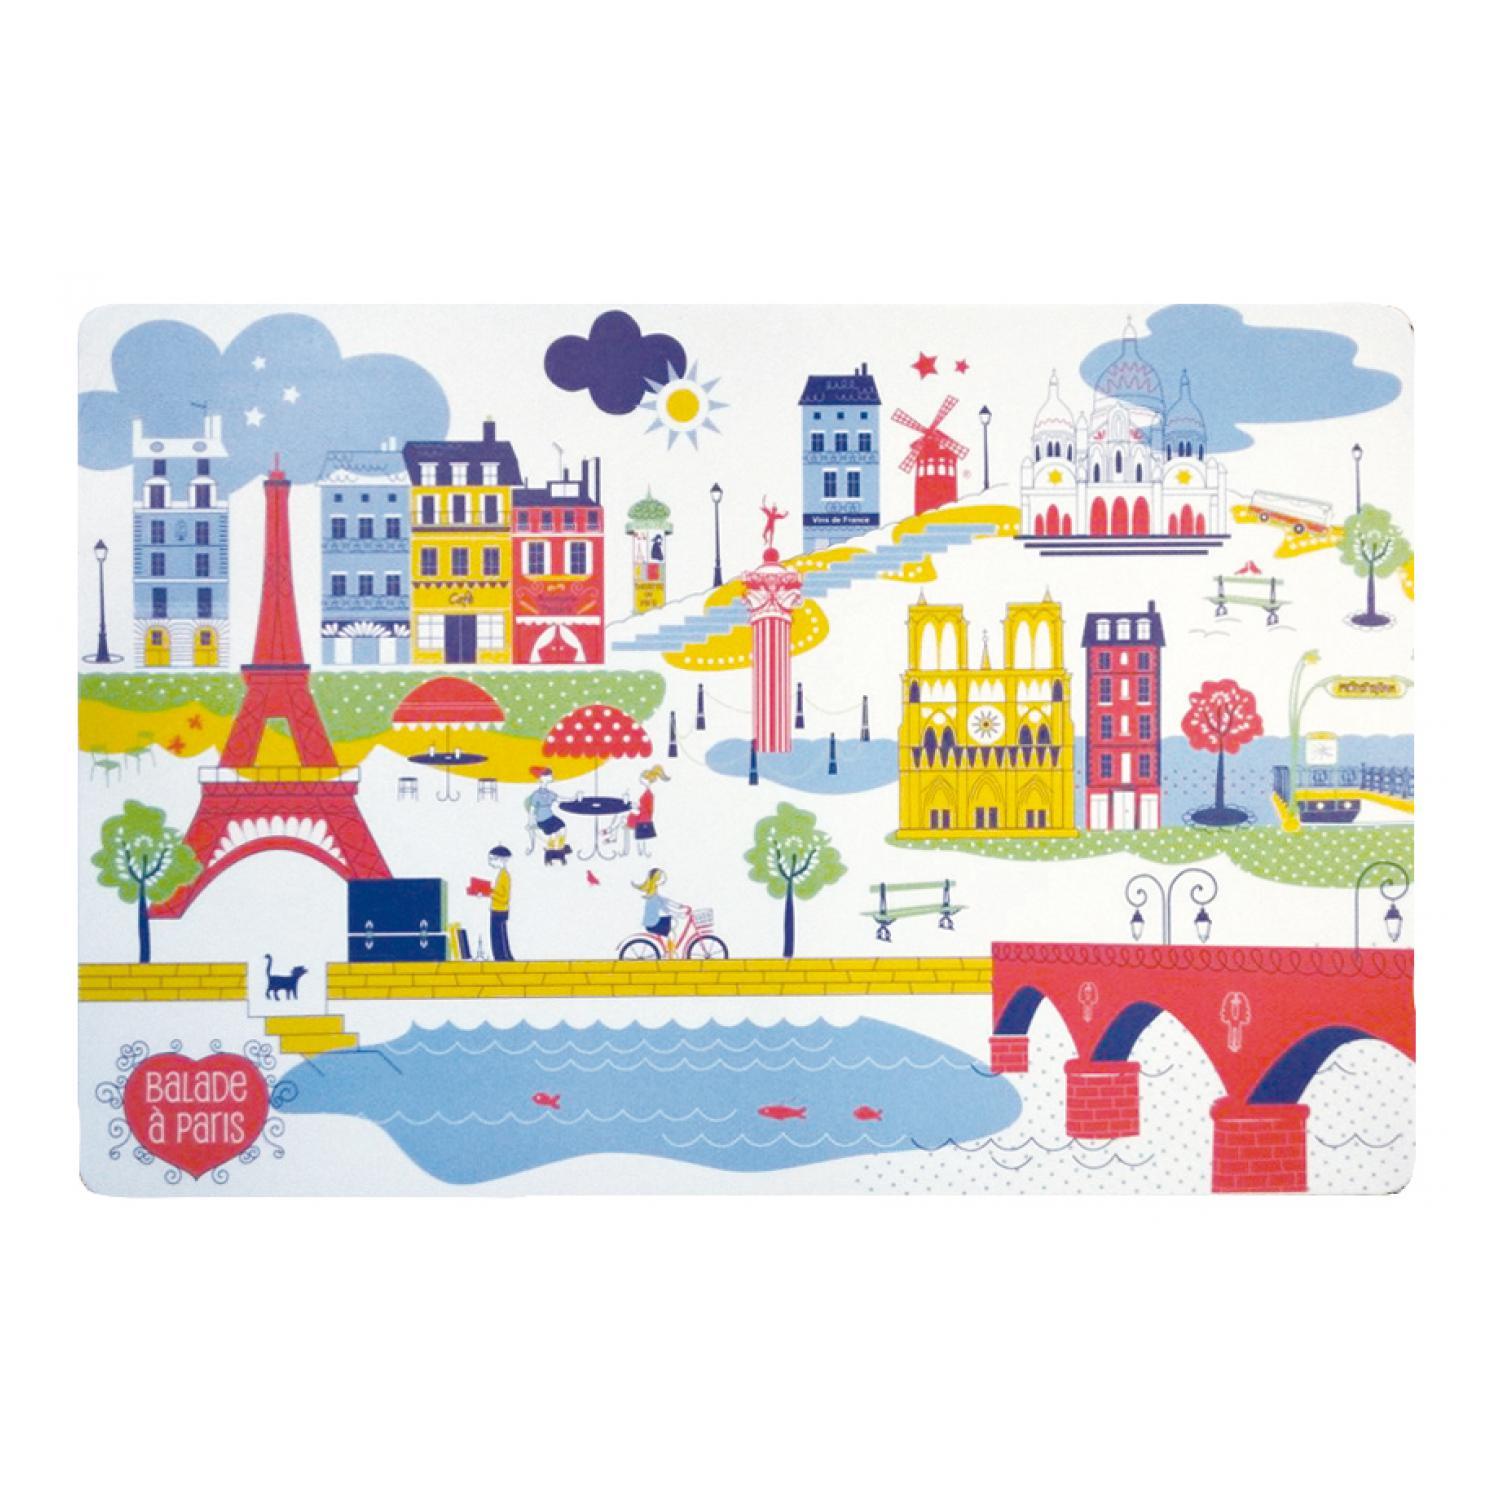 Set de table Balade à Paris Assortis 30 x 45